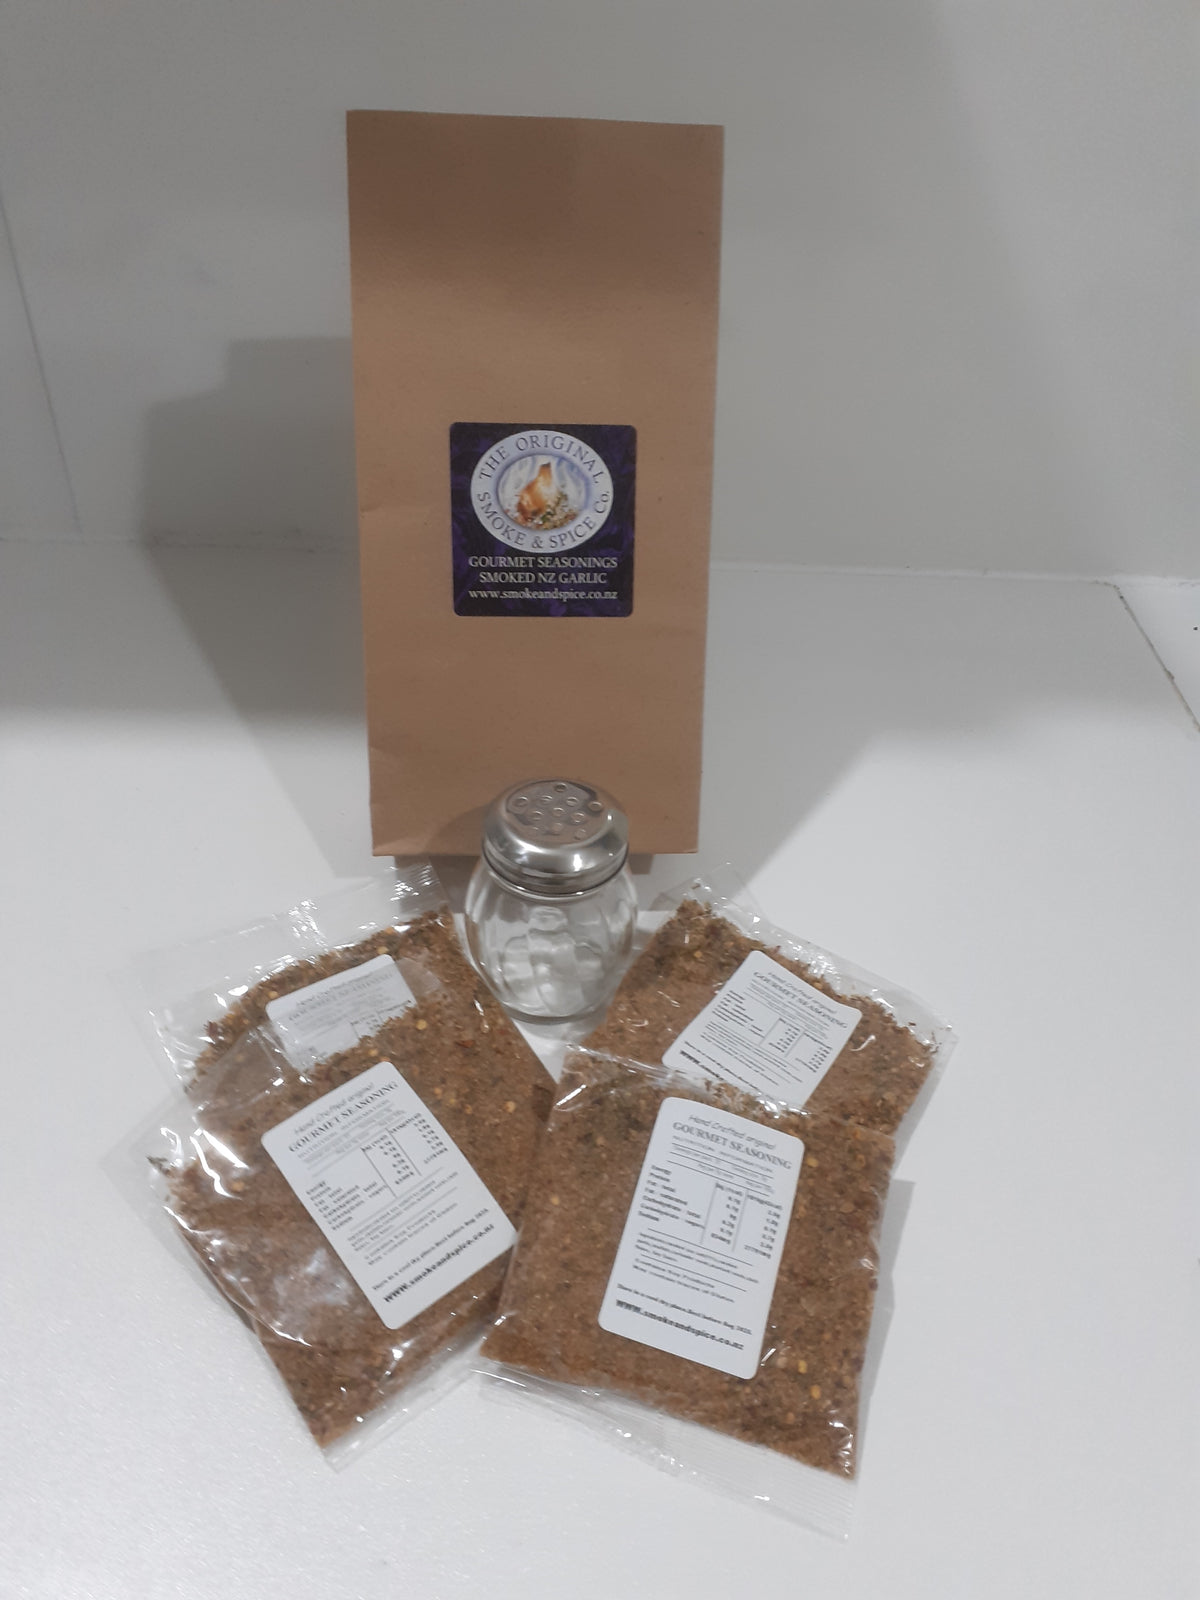 Gourmet Smoked NZ Garlic Salt